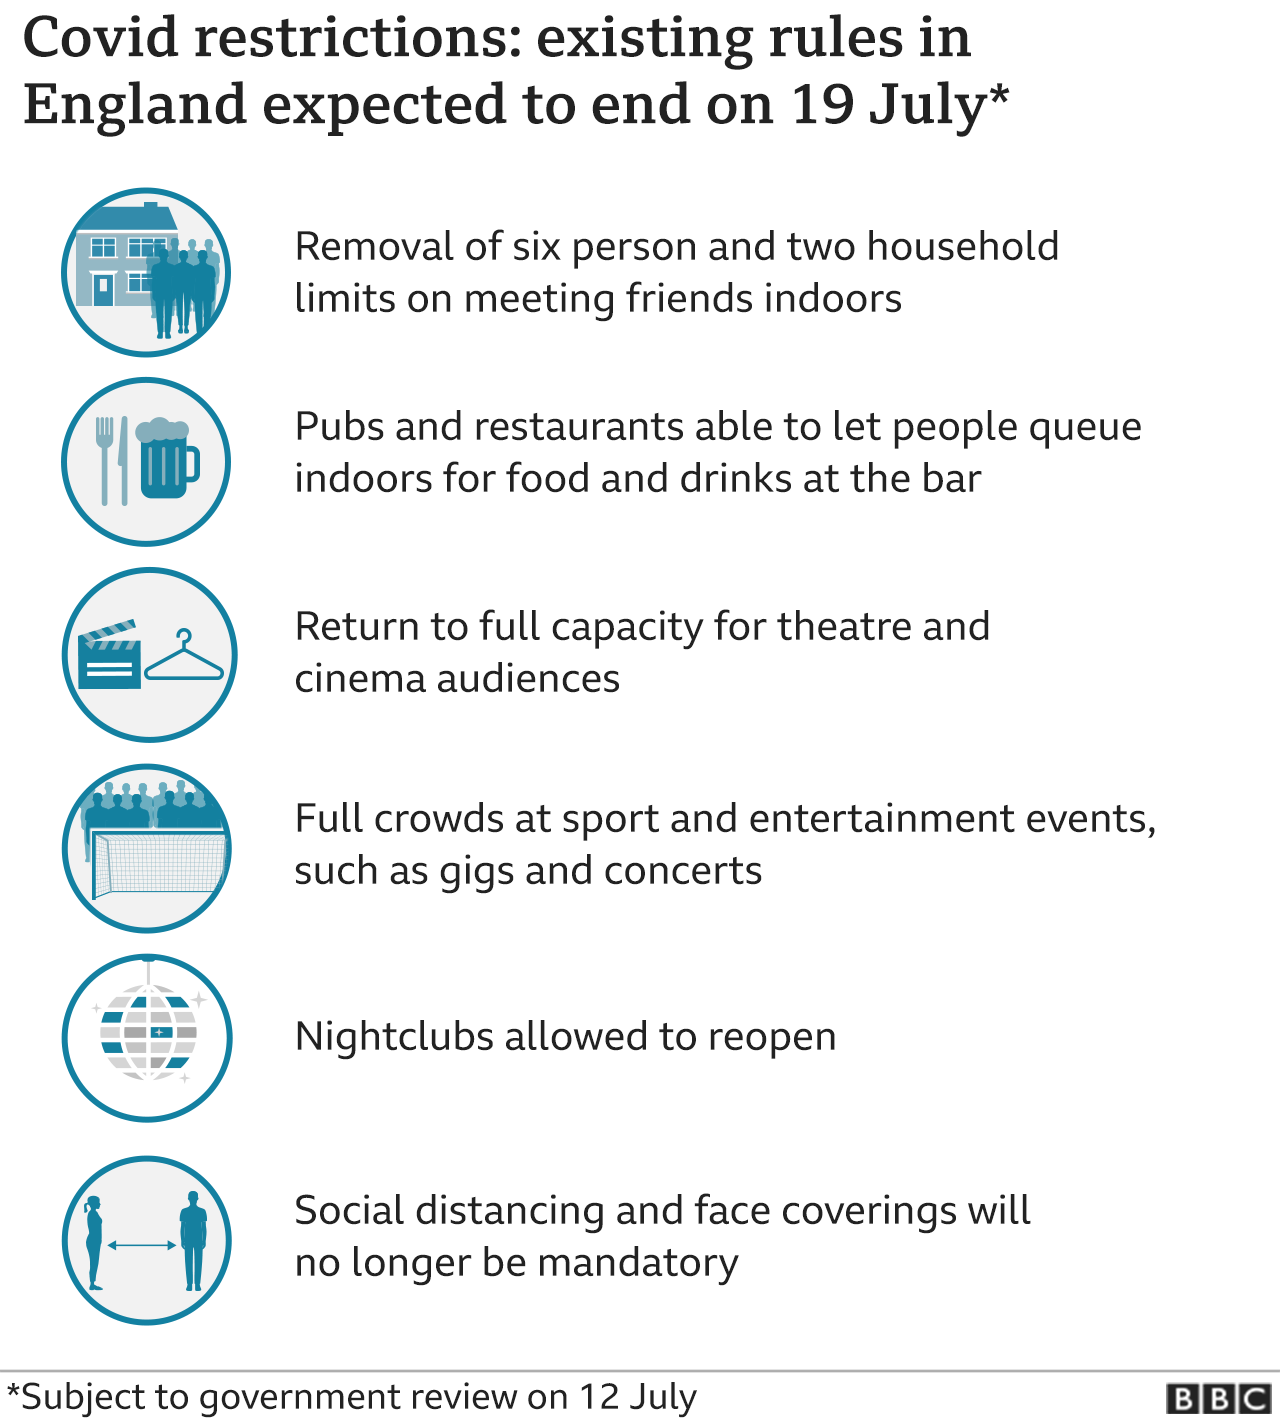 Graphic showing rules expected to be in place on 19 July